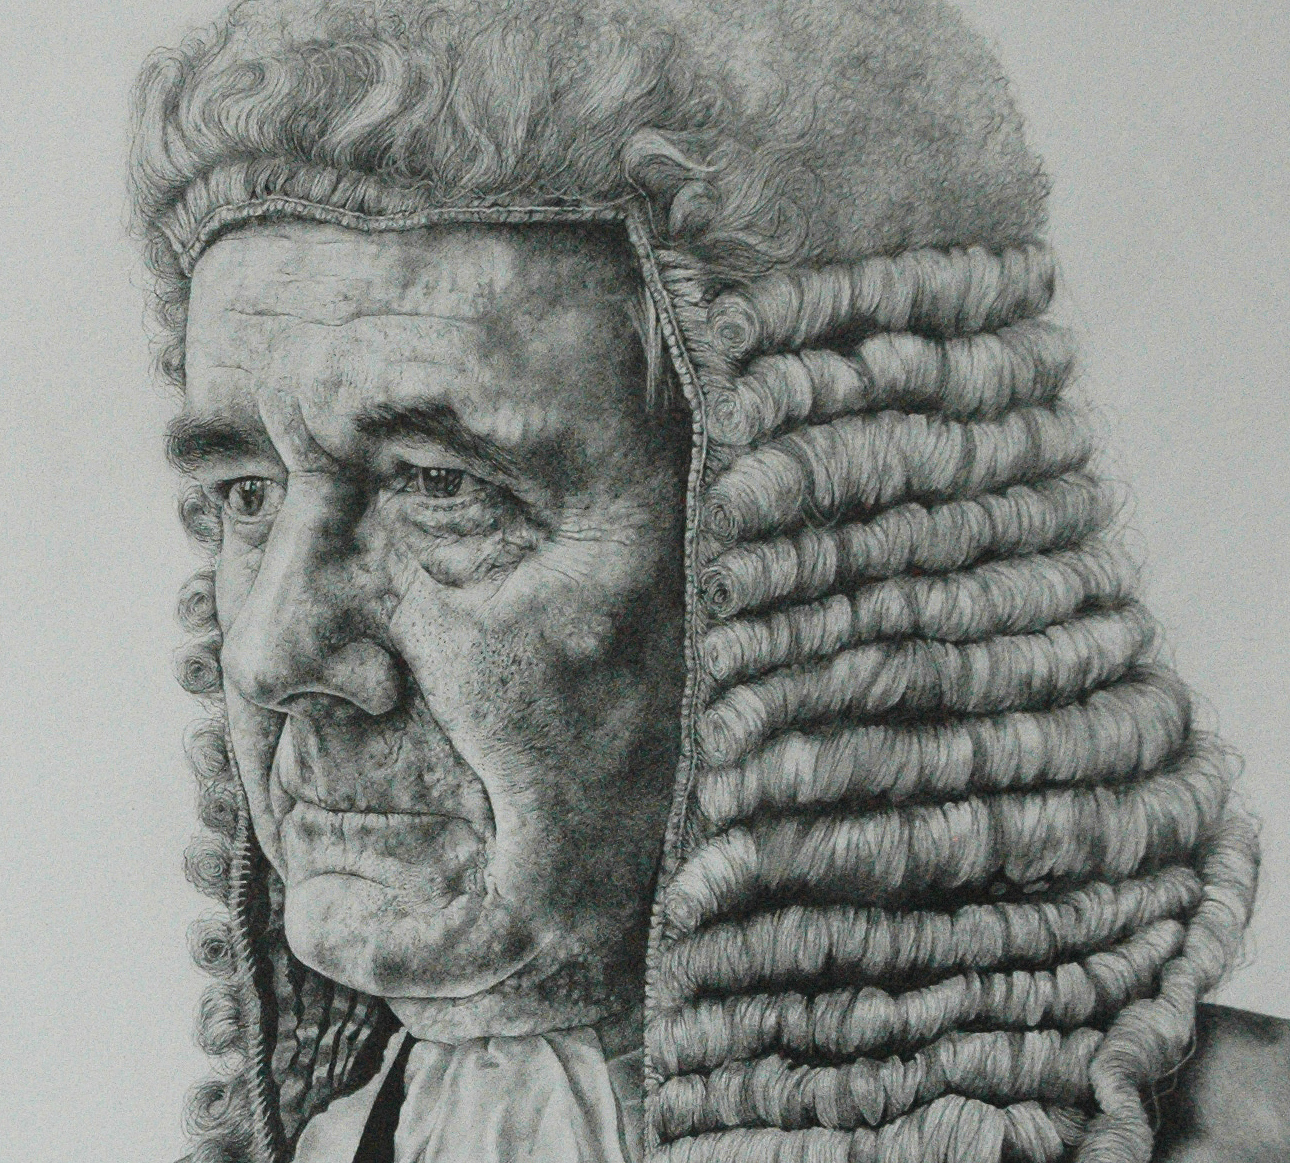 His Honour Judge Philip Head